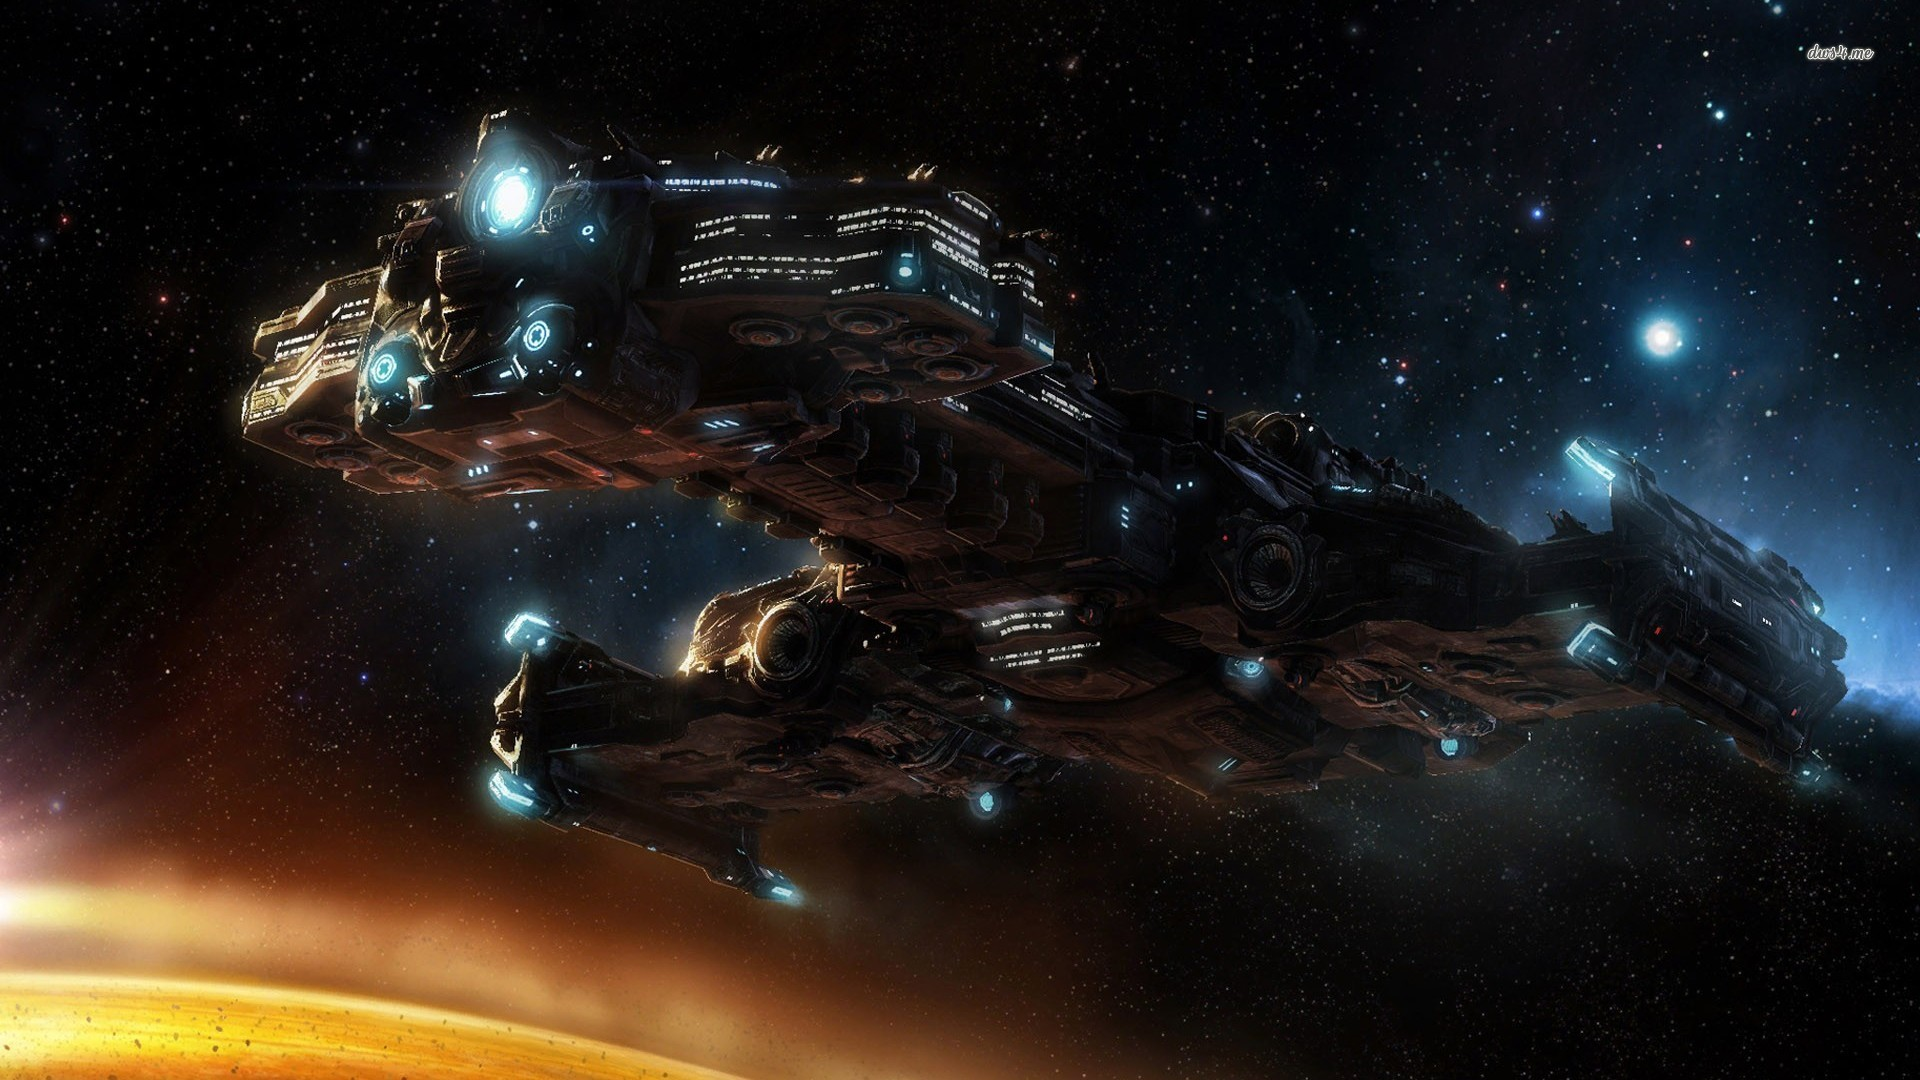 Hyperion Starcraft Ii Game Wallpaper Px Free Download 1920x1080px